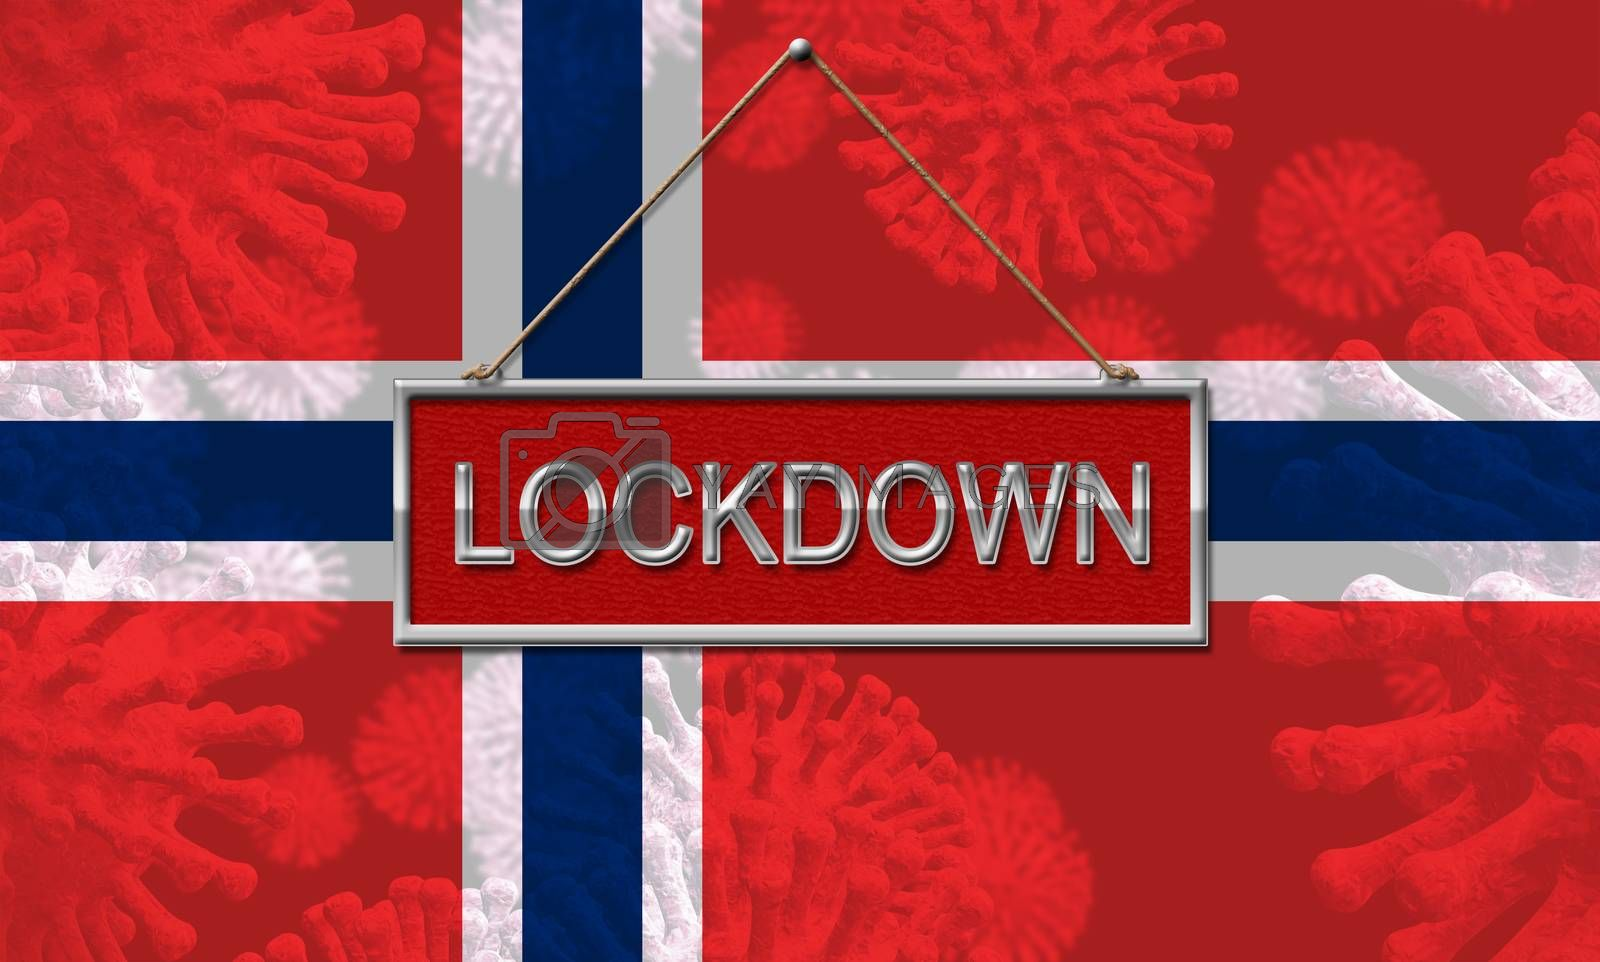 Norway lockdown stopping ncov epidemic or infection. Covid 19 Norwegian ban to isolate disease infection - 3d Illustration